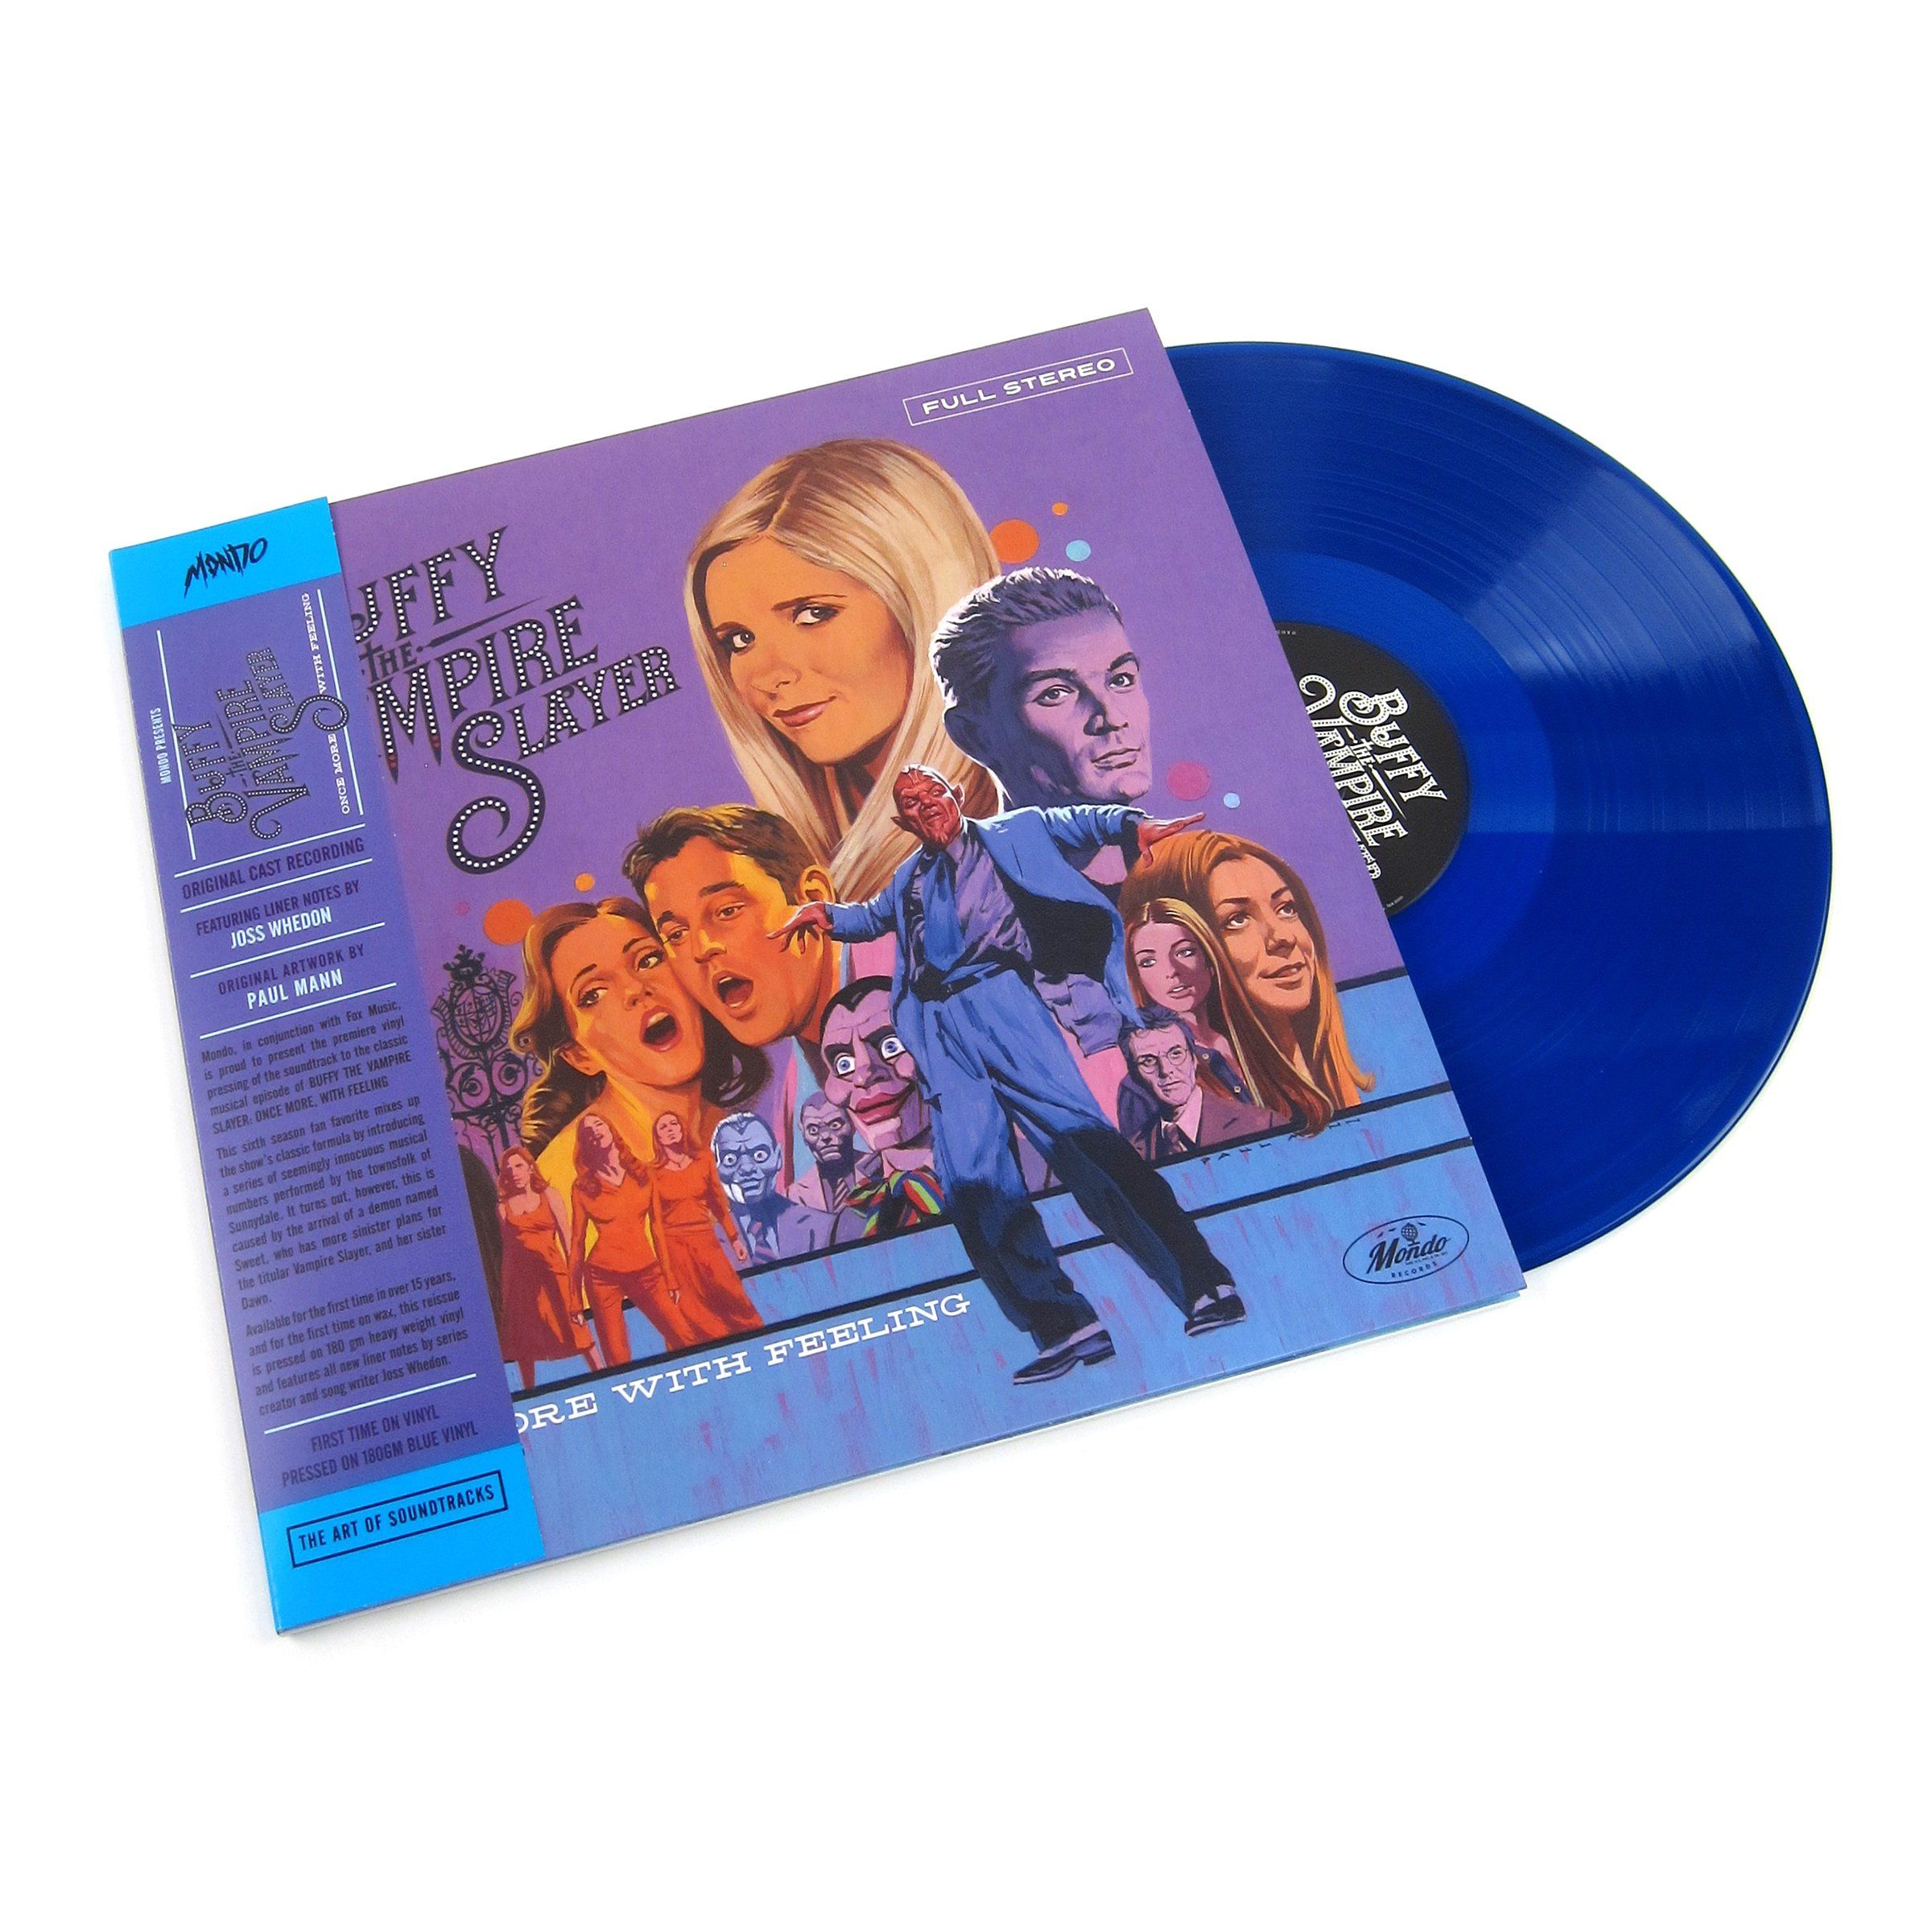 Buffy The Vampire Slayer Buffy The Vampire Slayer Once More With Feeling Soundtrack 180g Colored Vinyl Vinyl Lp Vampire Slayer Buffy Buffy The Vampire